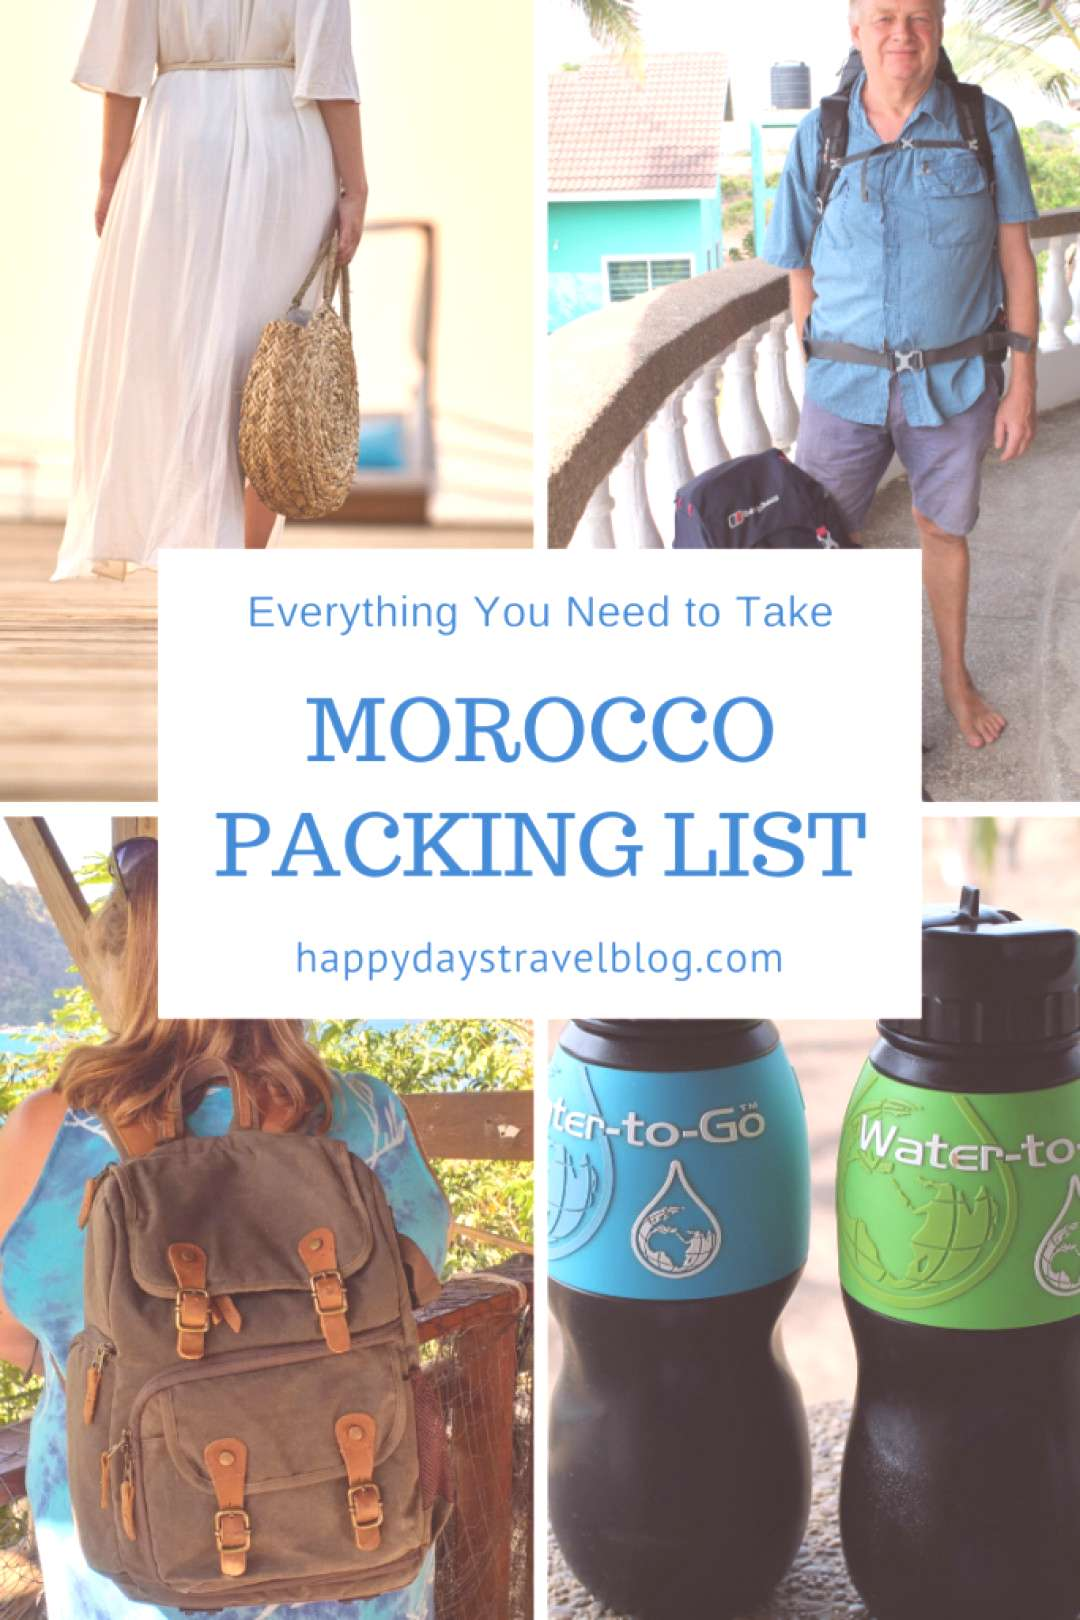 Morocco Packing List - Everything You Need - Happy Days Travel Blog